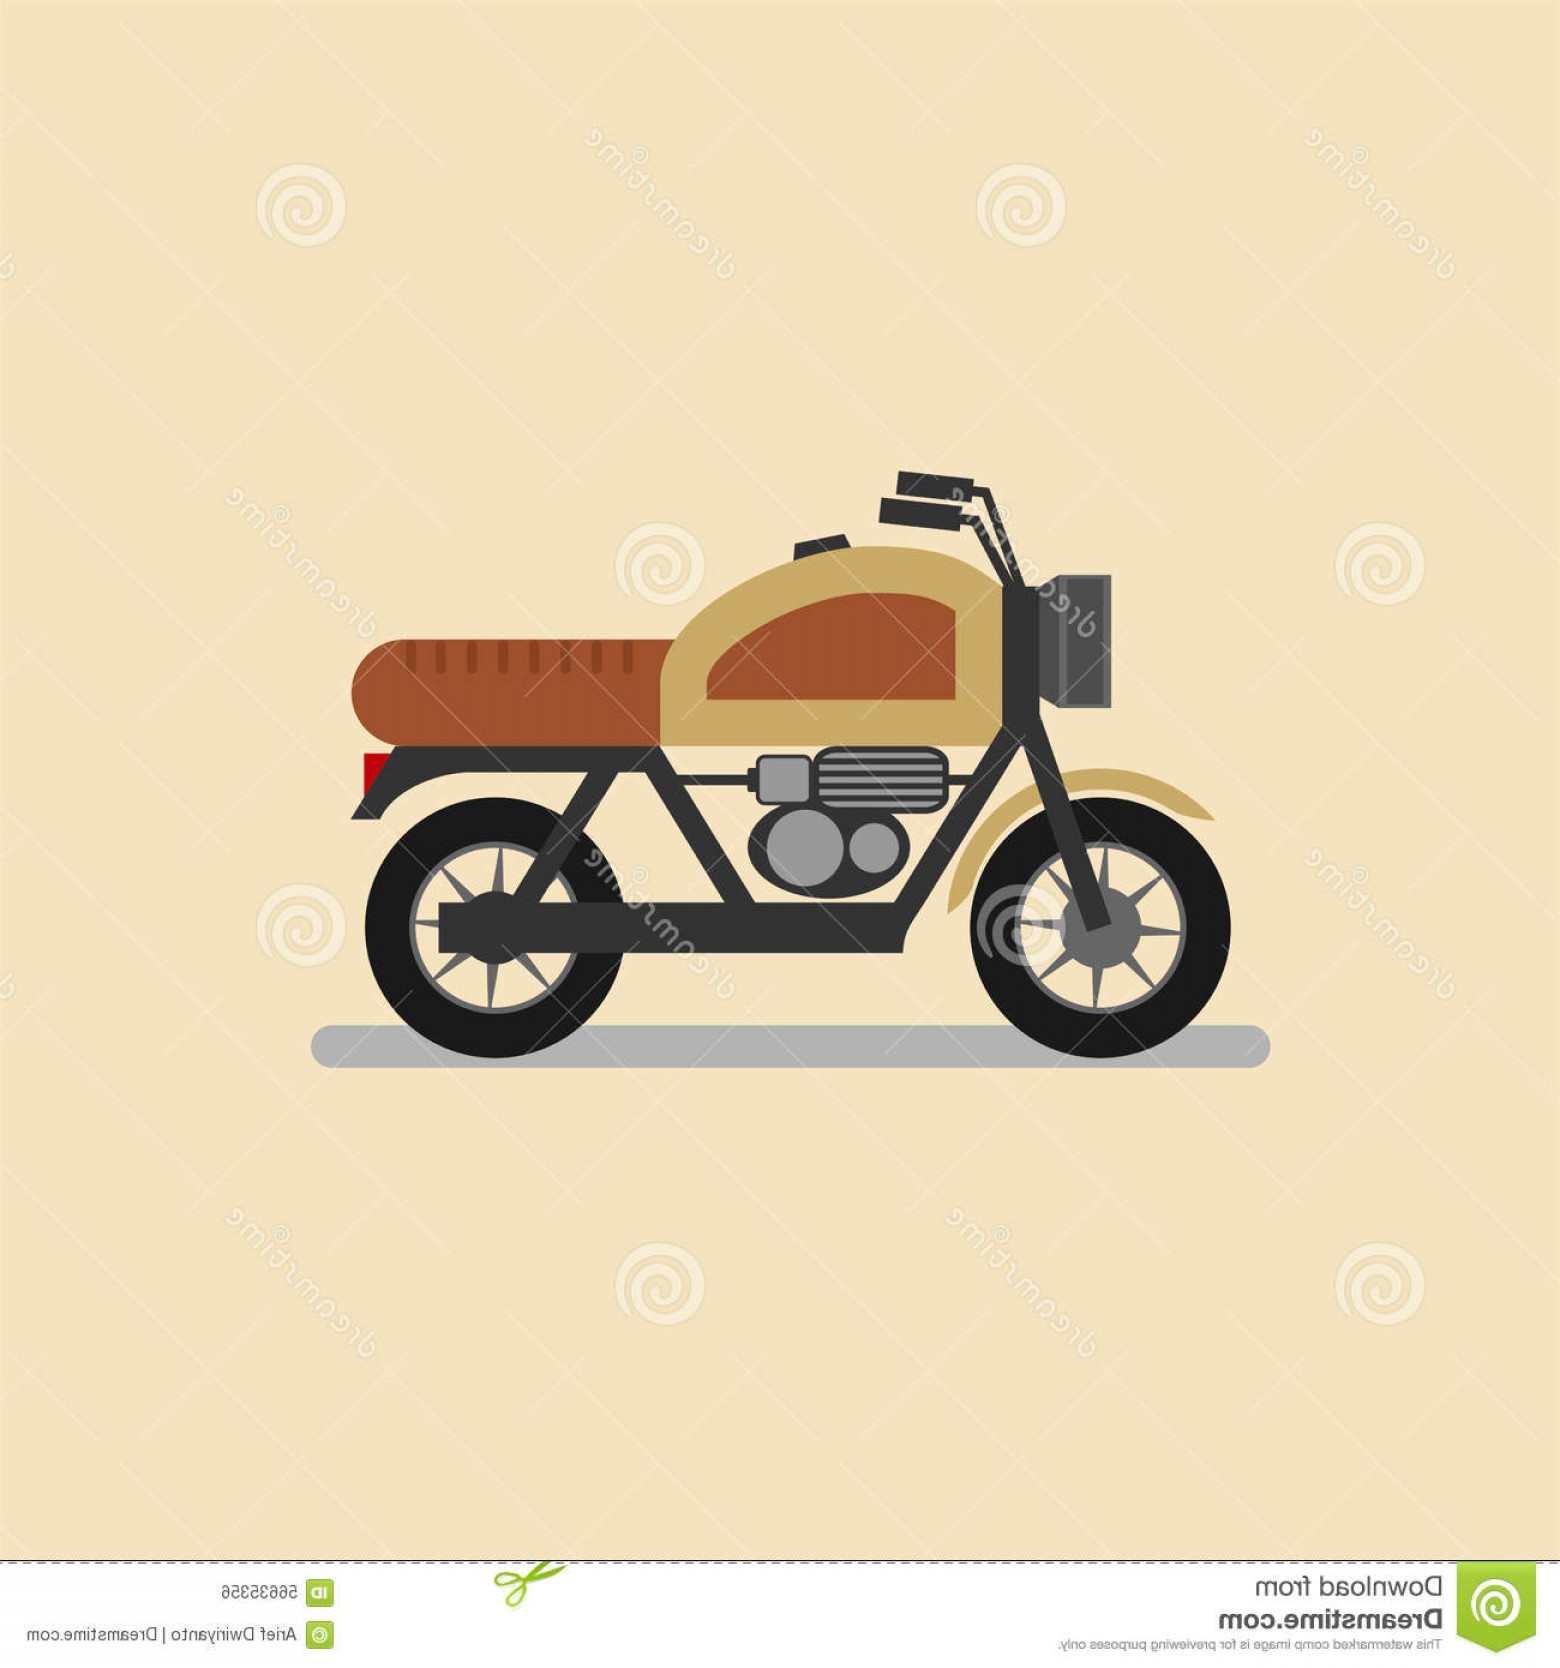 Flat Vector Motorcycle: Stock Illustration Vintage Motorcycle Flat Design Your Project Image